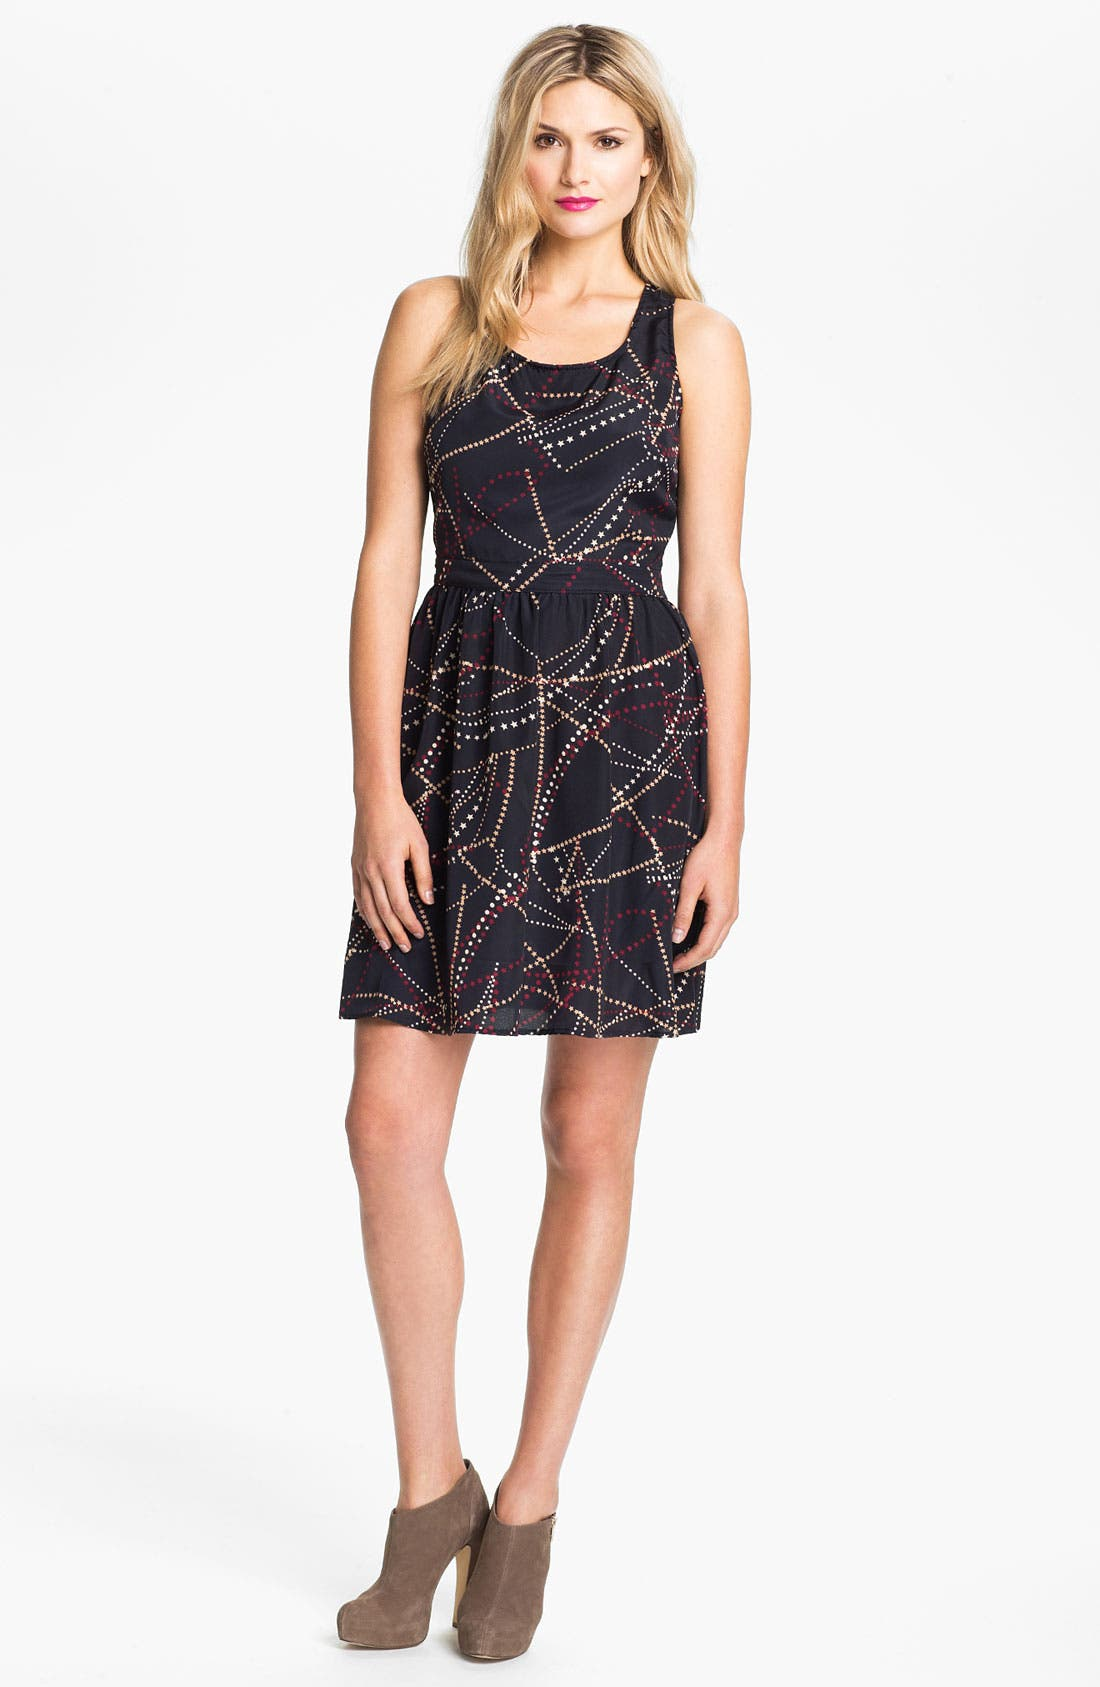 Main Image - Max & Mia Banded Back Print Dress (Online Exclusive)